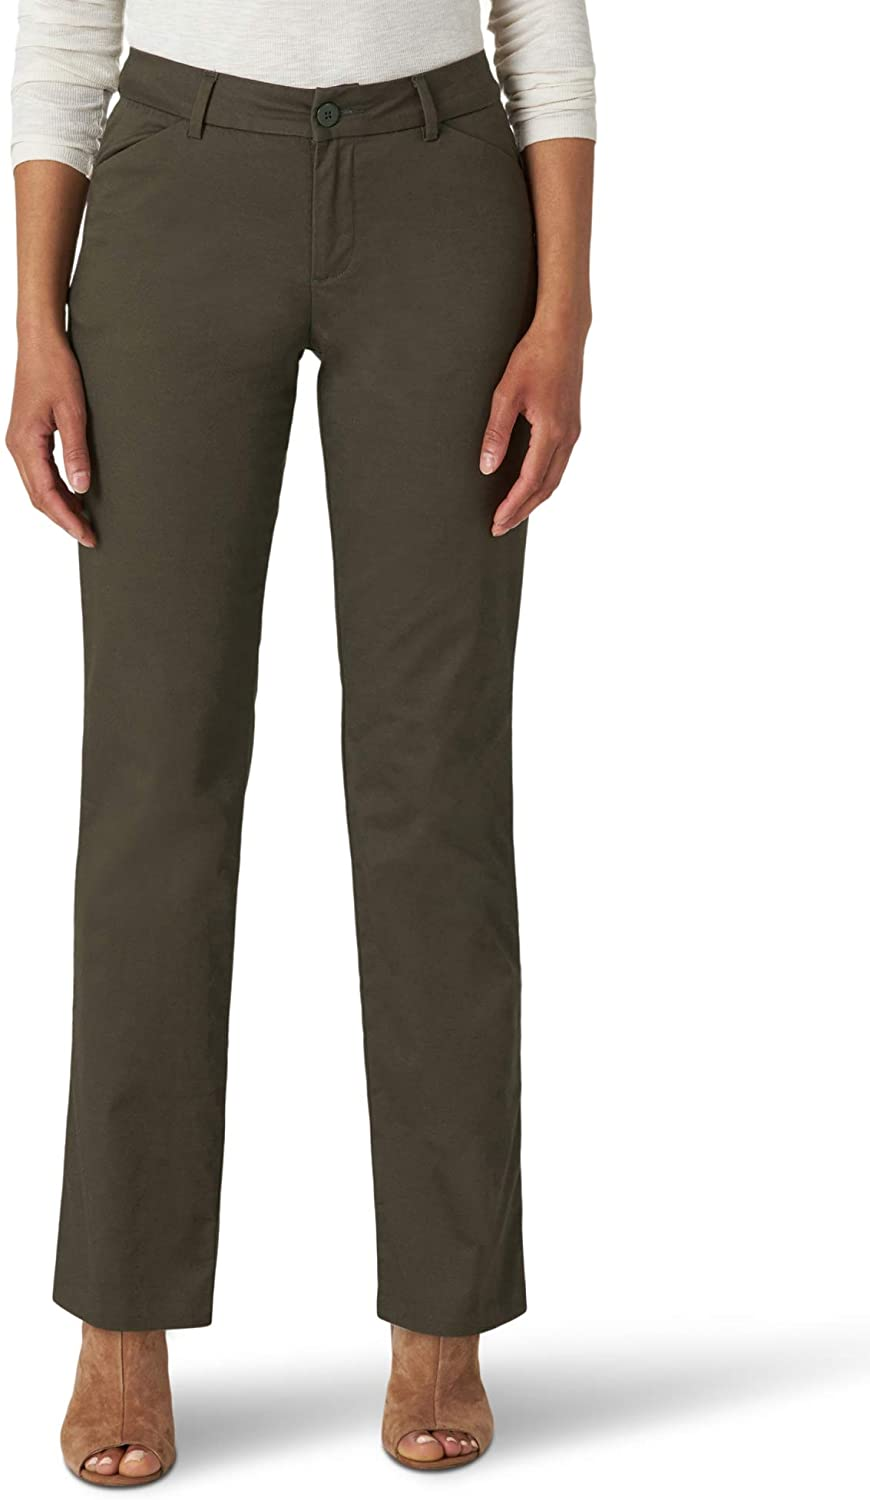 Lee Uniforms Womens Wrinkle Free Relaxed Fit Straight Leg Pant